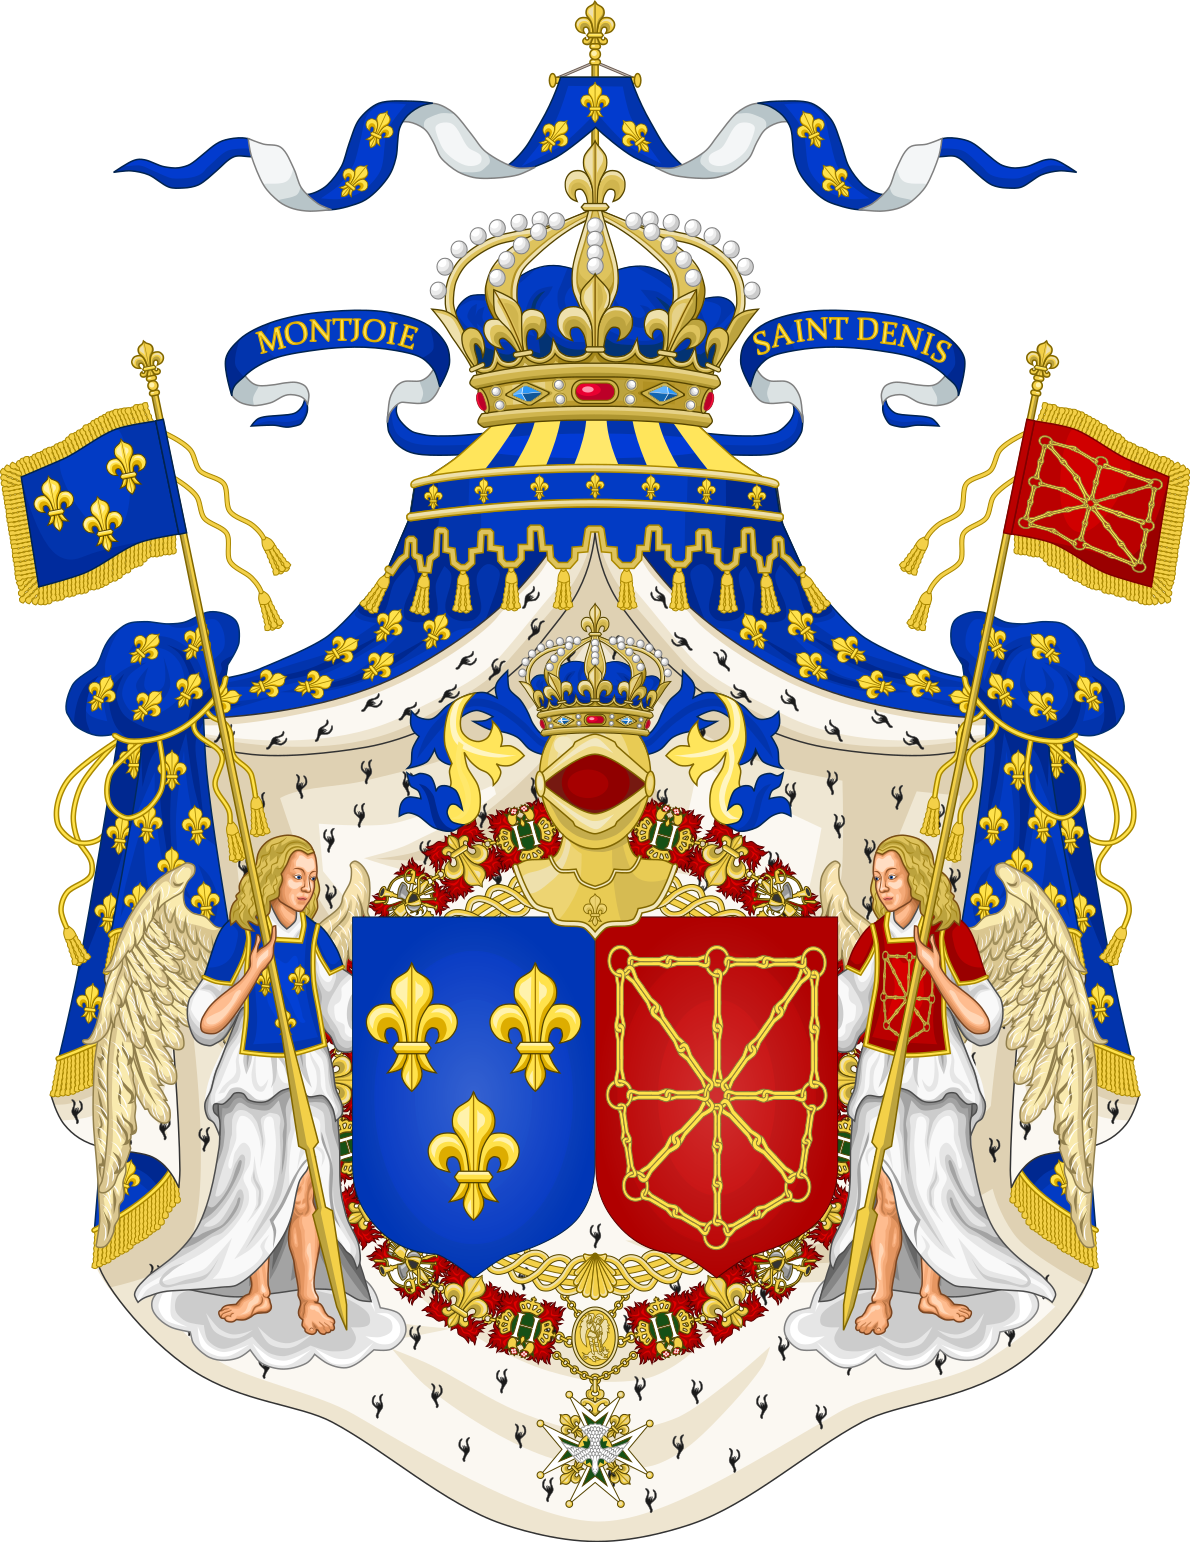 1190px-Grand_Royal_Coat_of_Arms_of_France_&_Navarre.svg.png